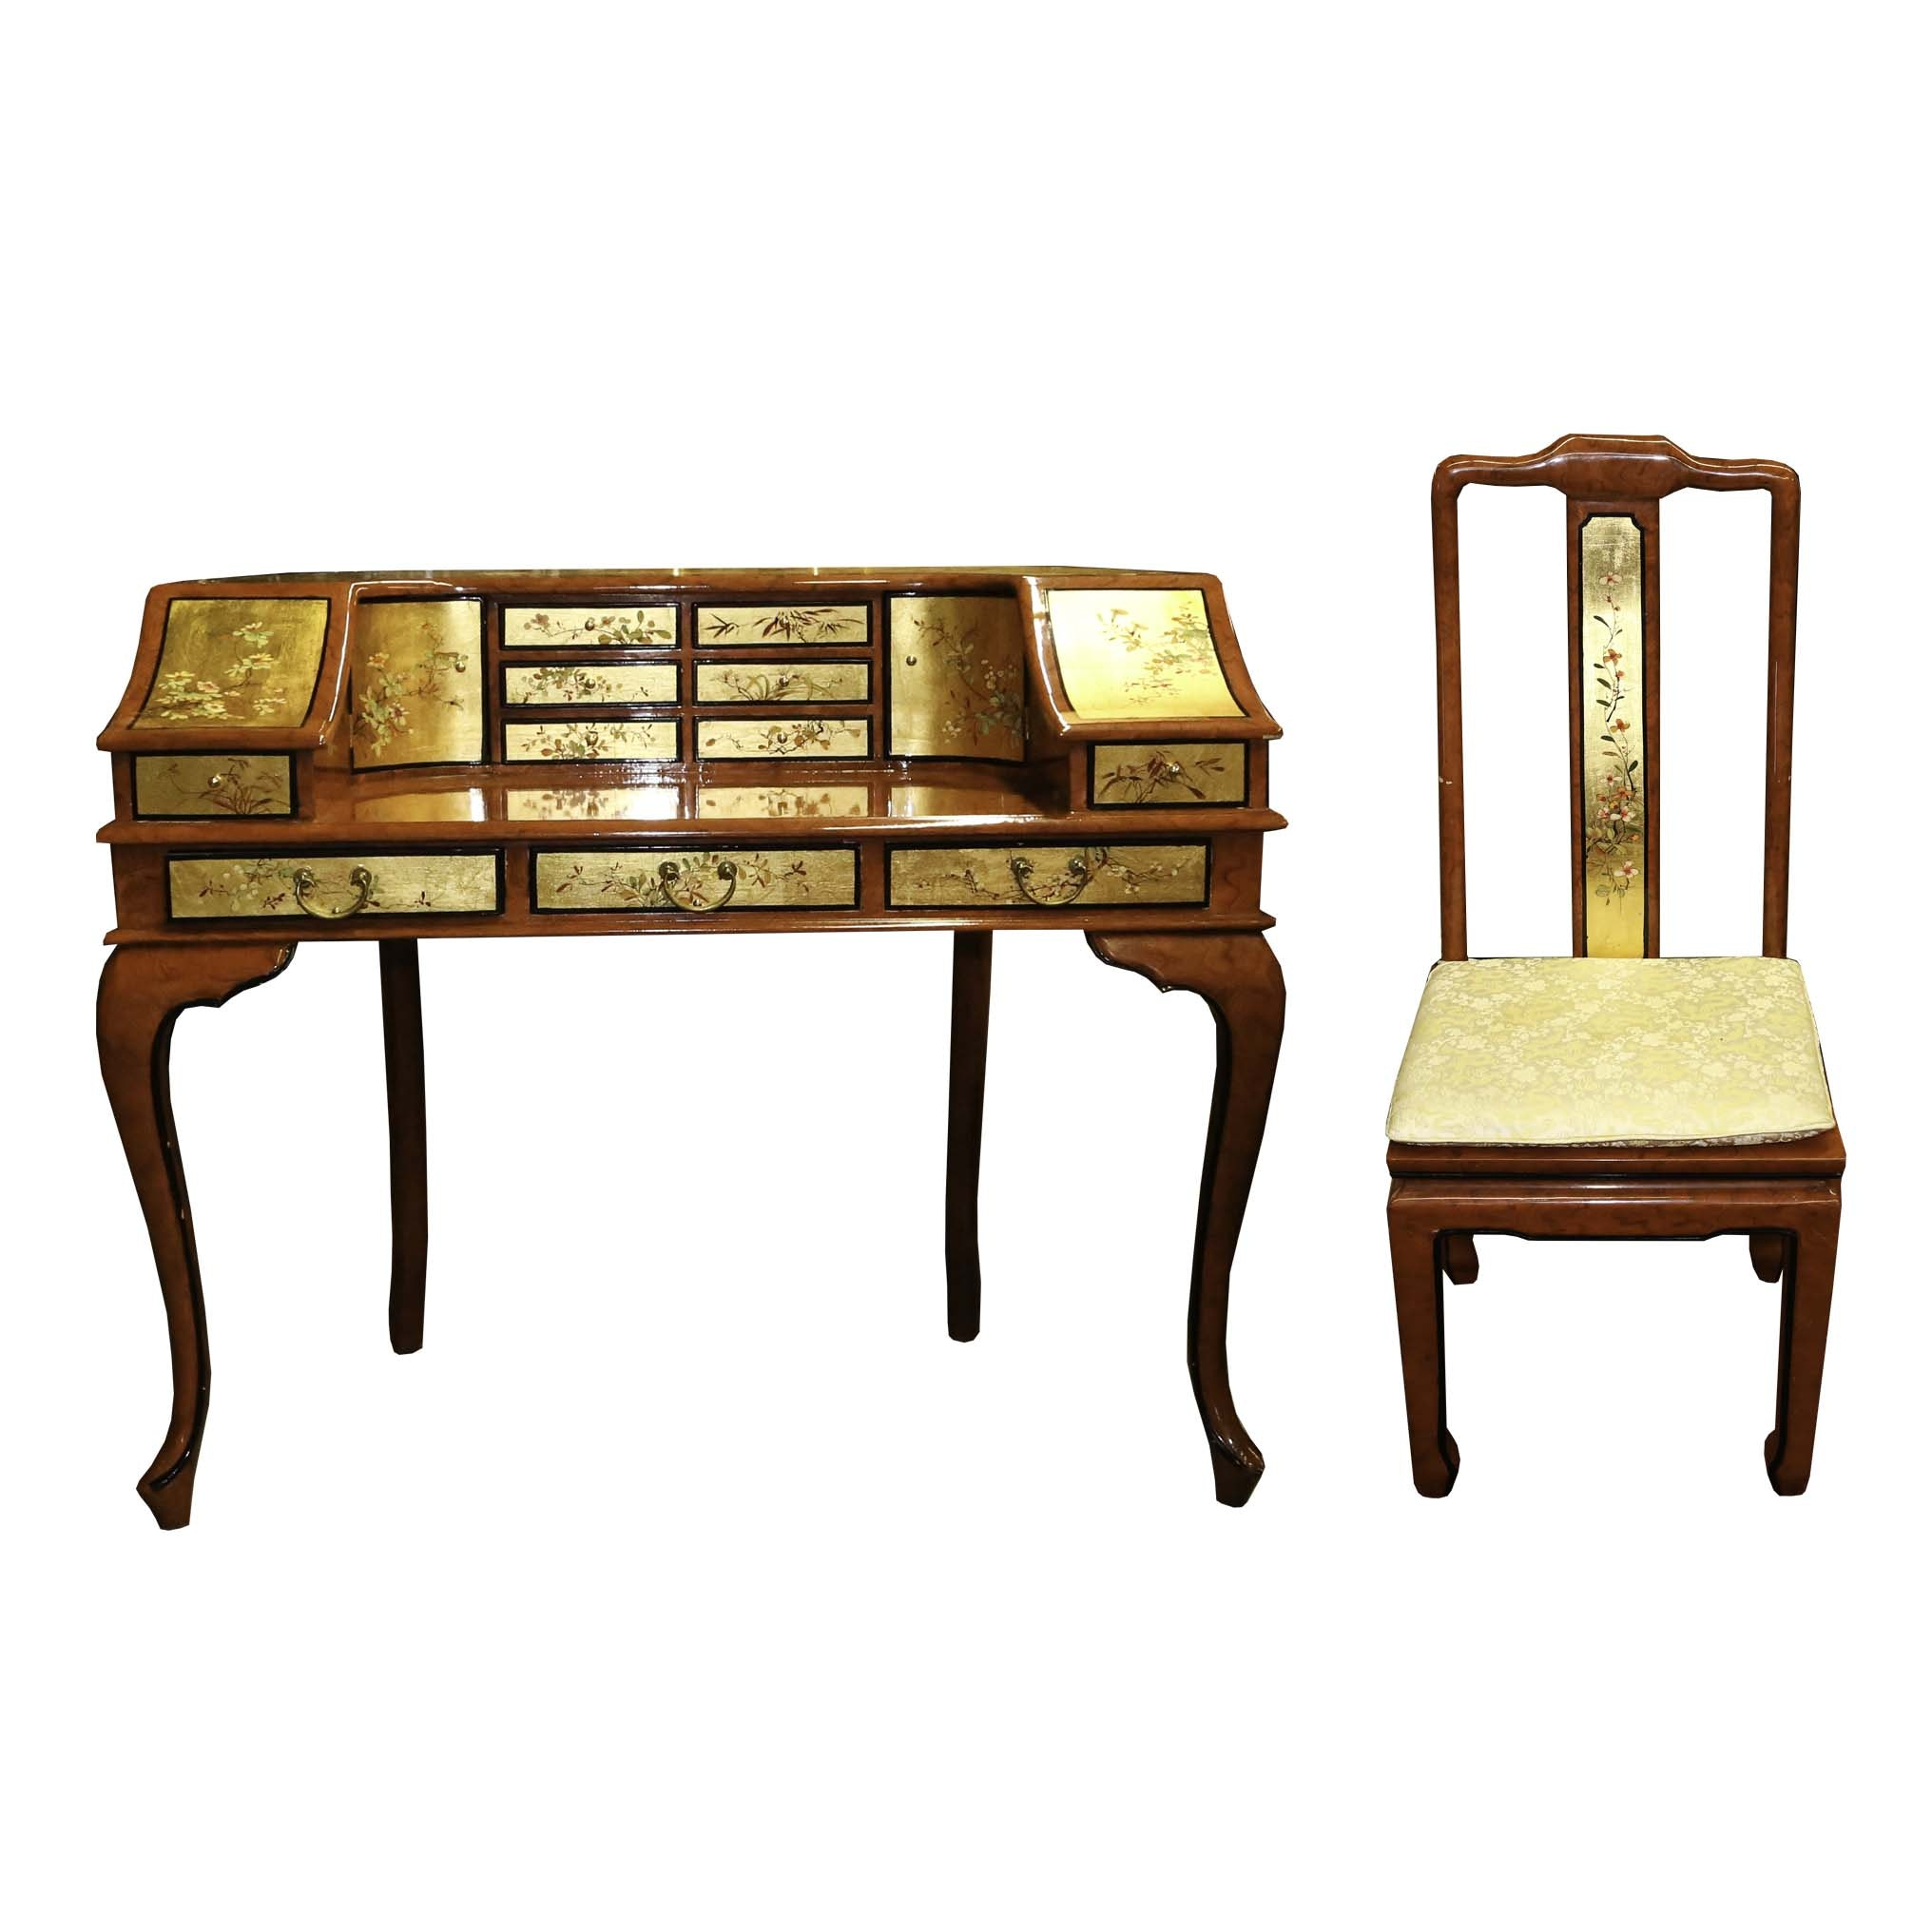 Queen Anne Style Chinoiserie Desk with Chair